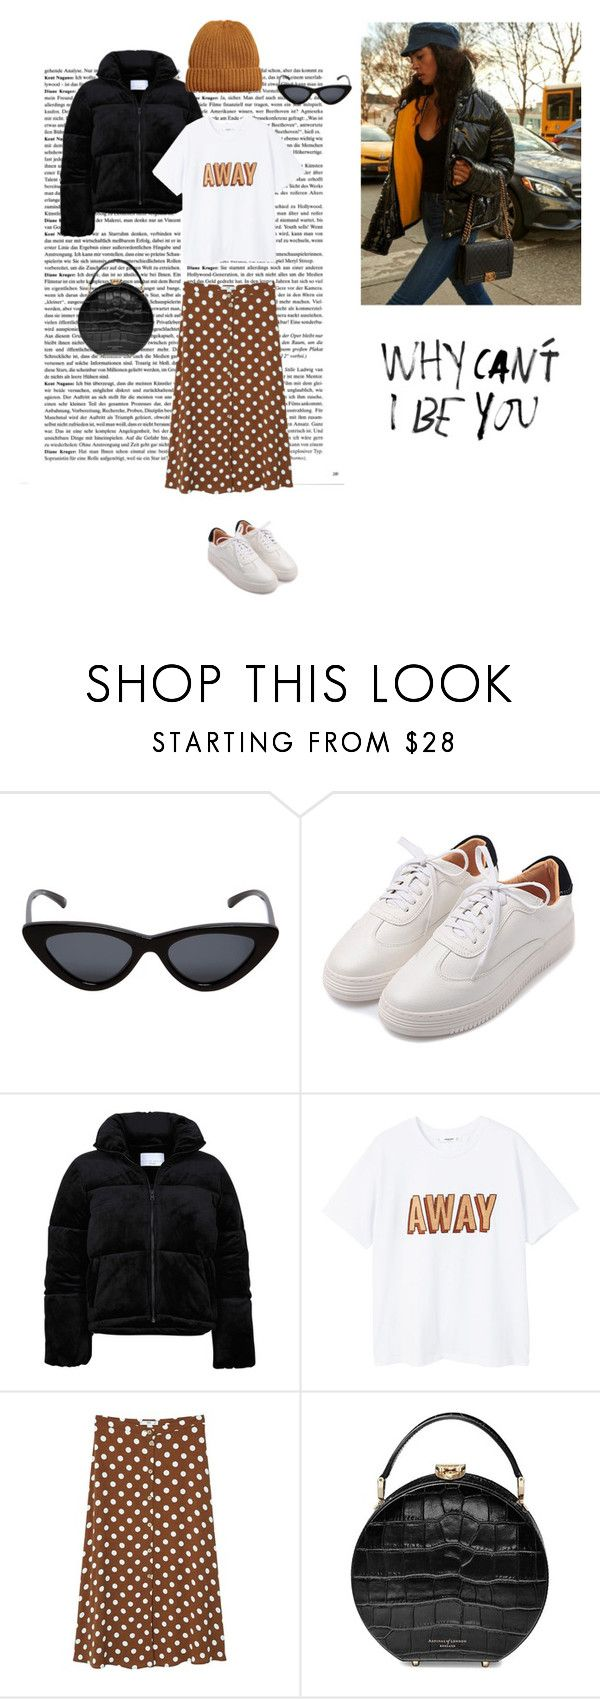 """21/02"" by dorey on Polyvore featuring Le Specs, MANGO, Aspinal of London, StreetStyle and lay"